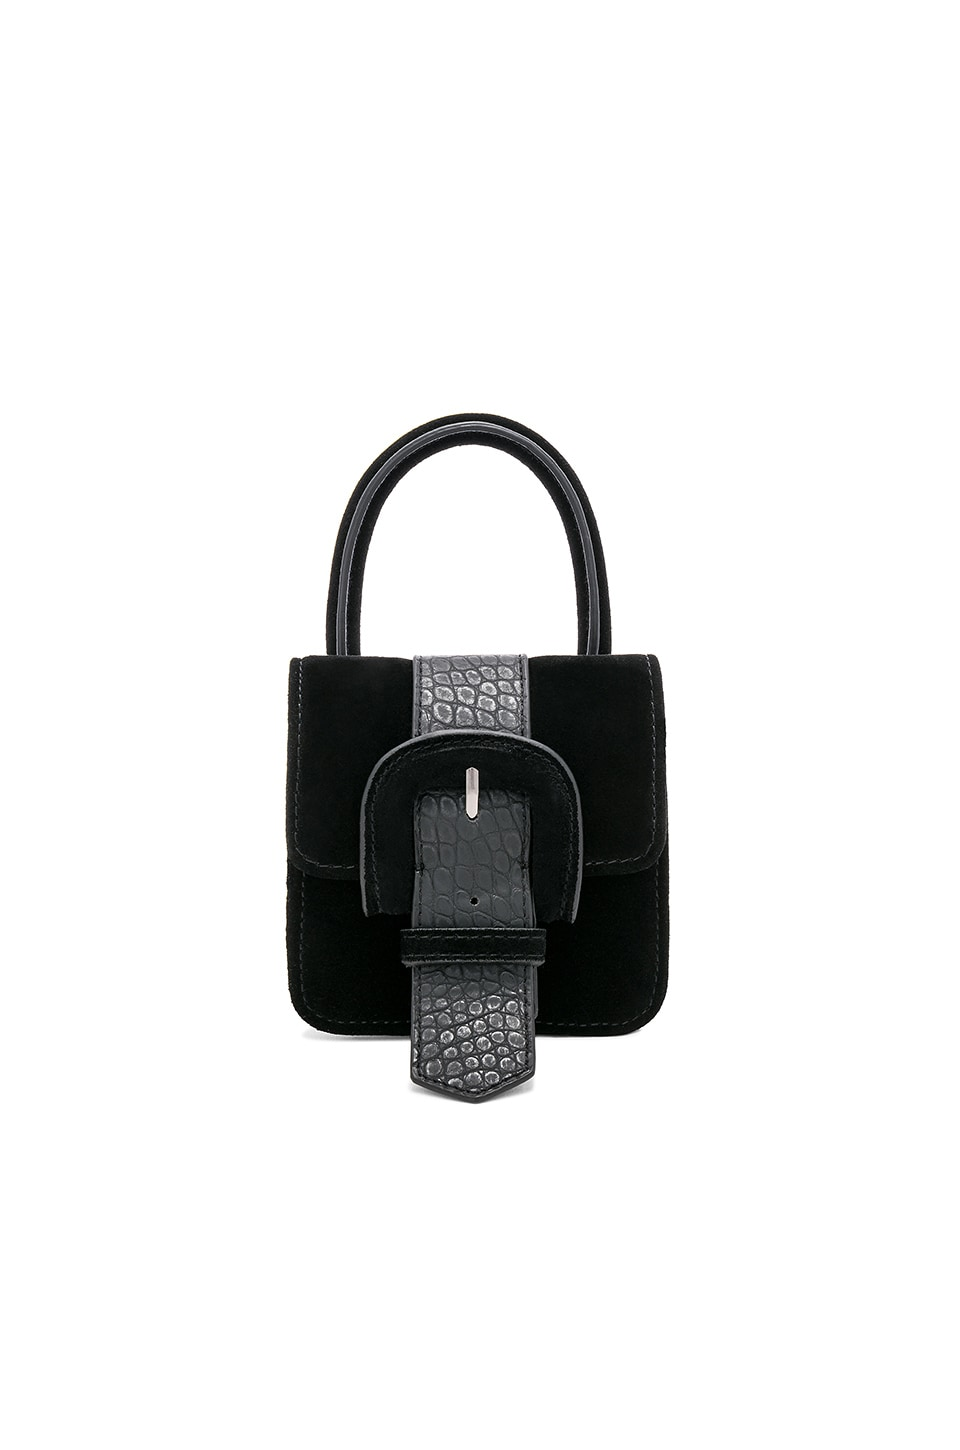 House of Harlow 1960 BOLSA MINI MICRO